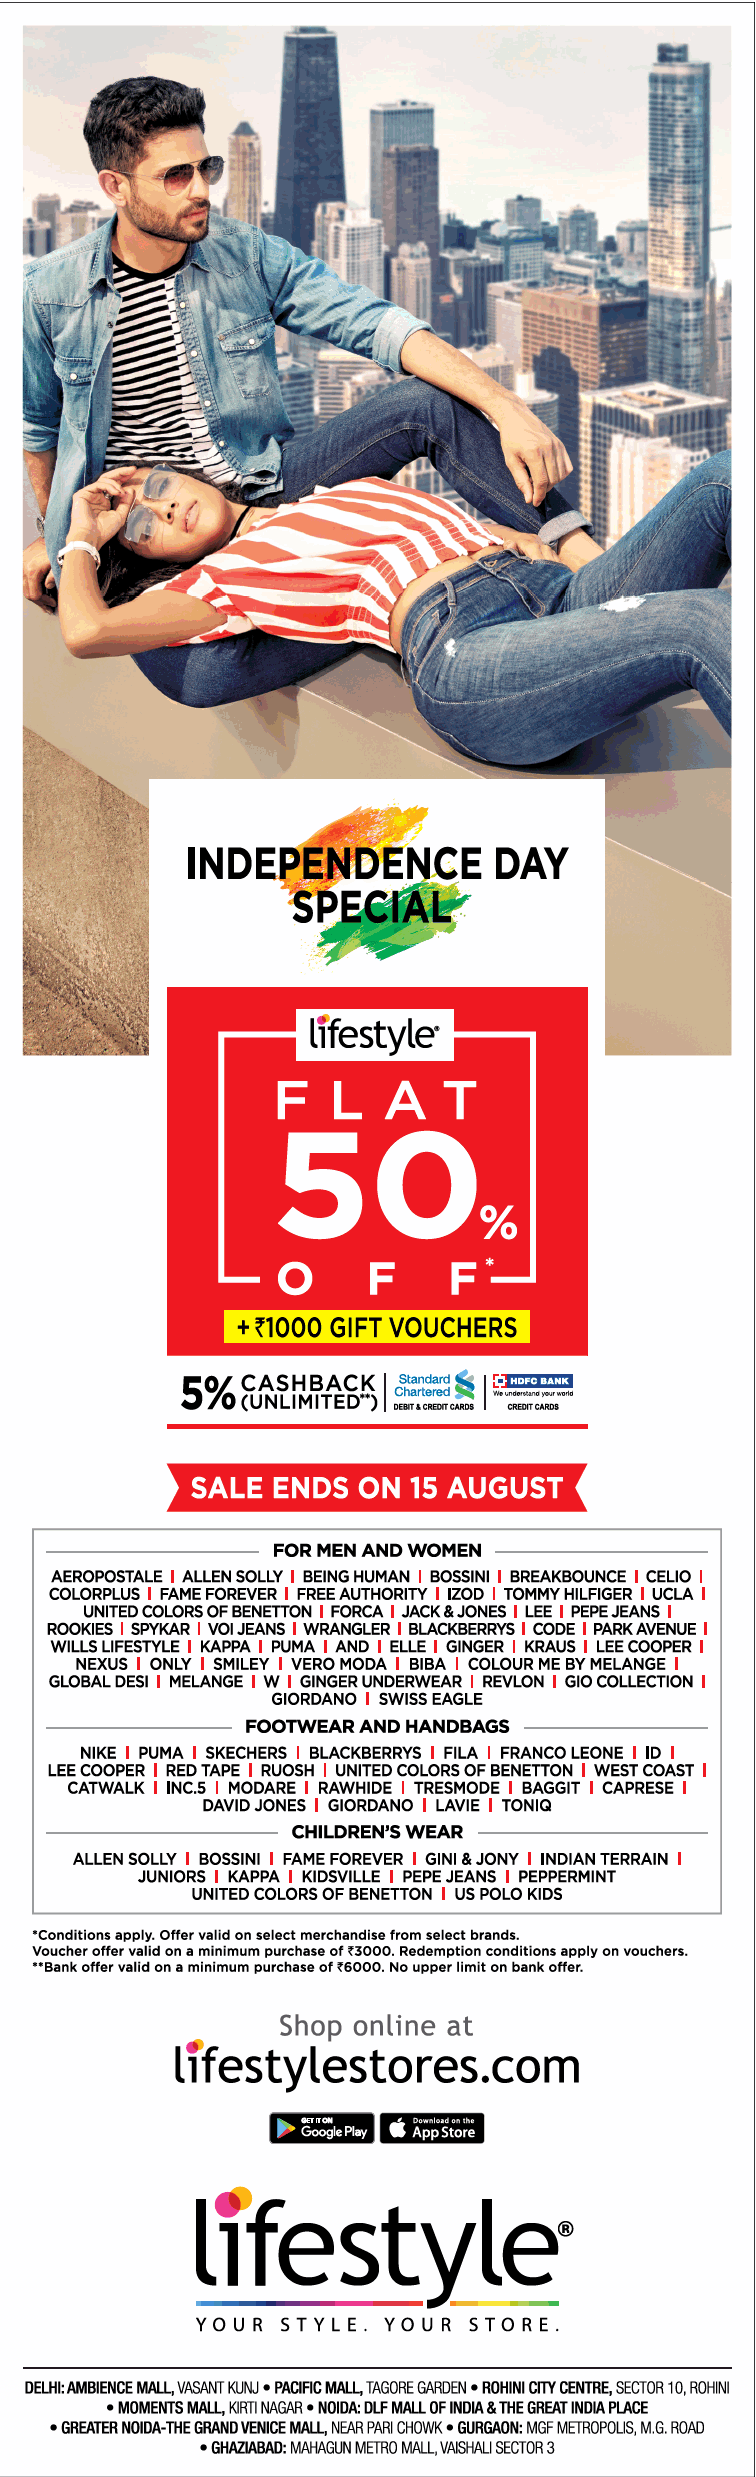 Lifestyle Independence Day Special Flat 50% Off Ad